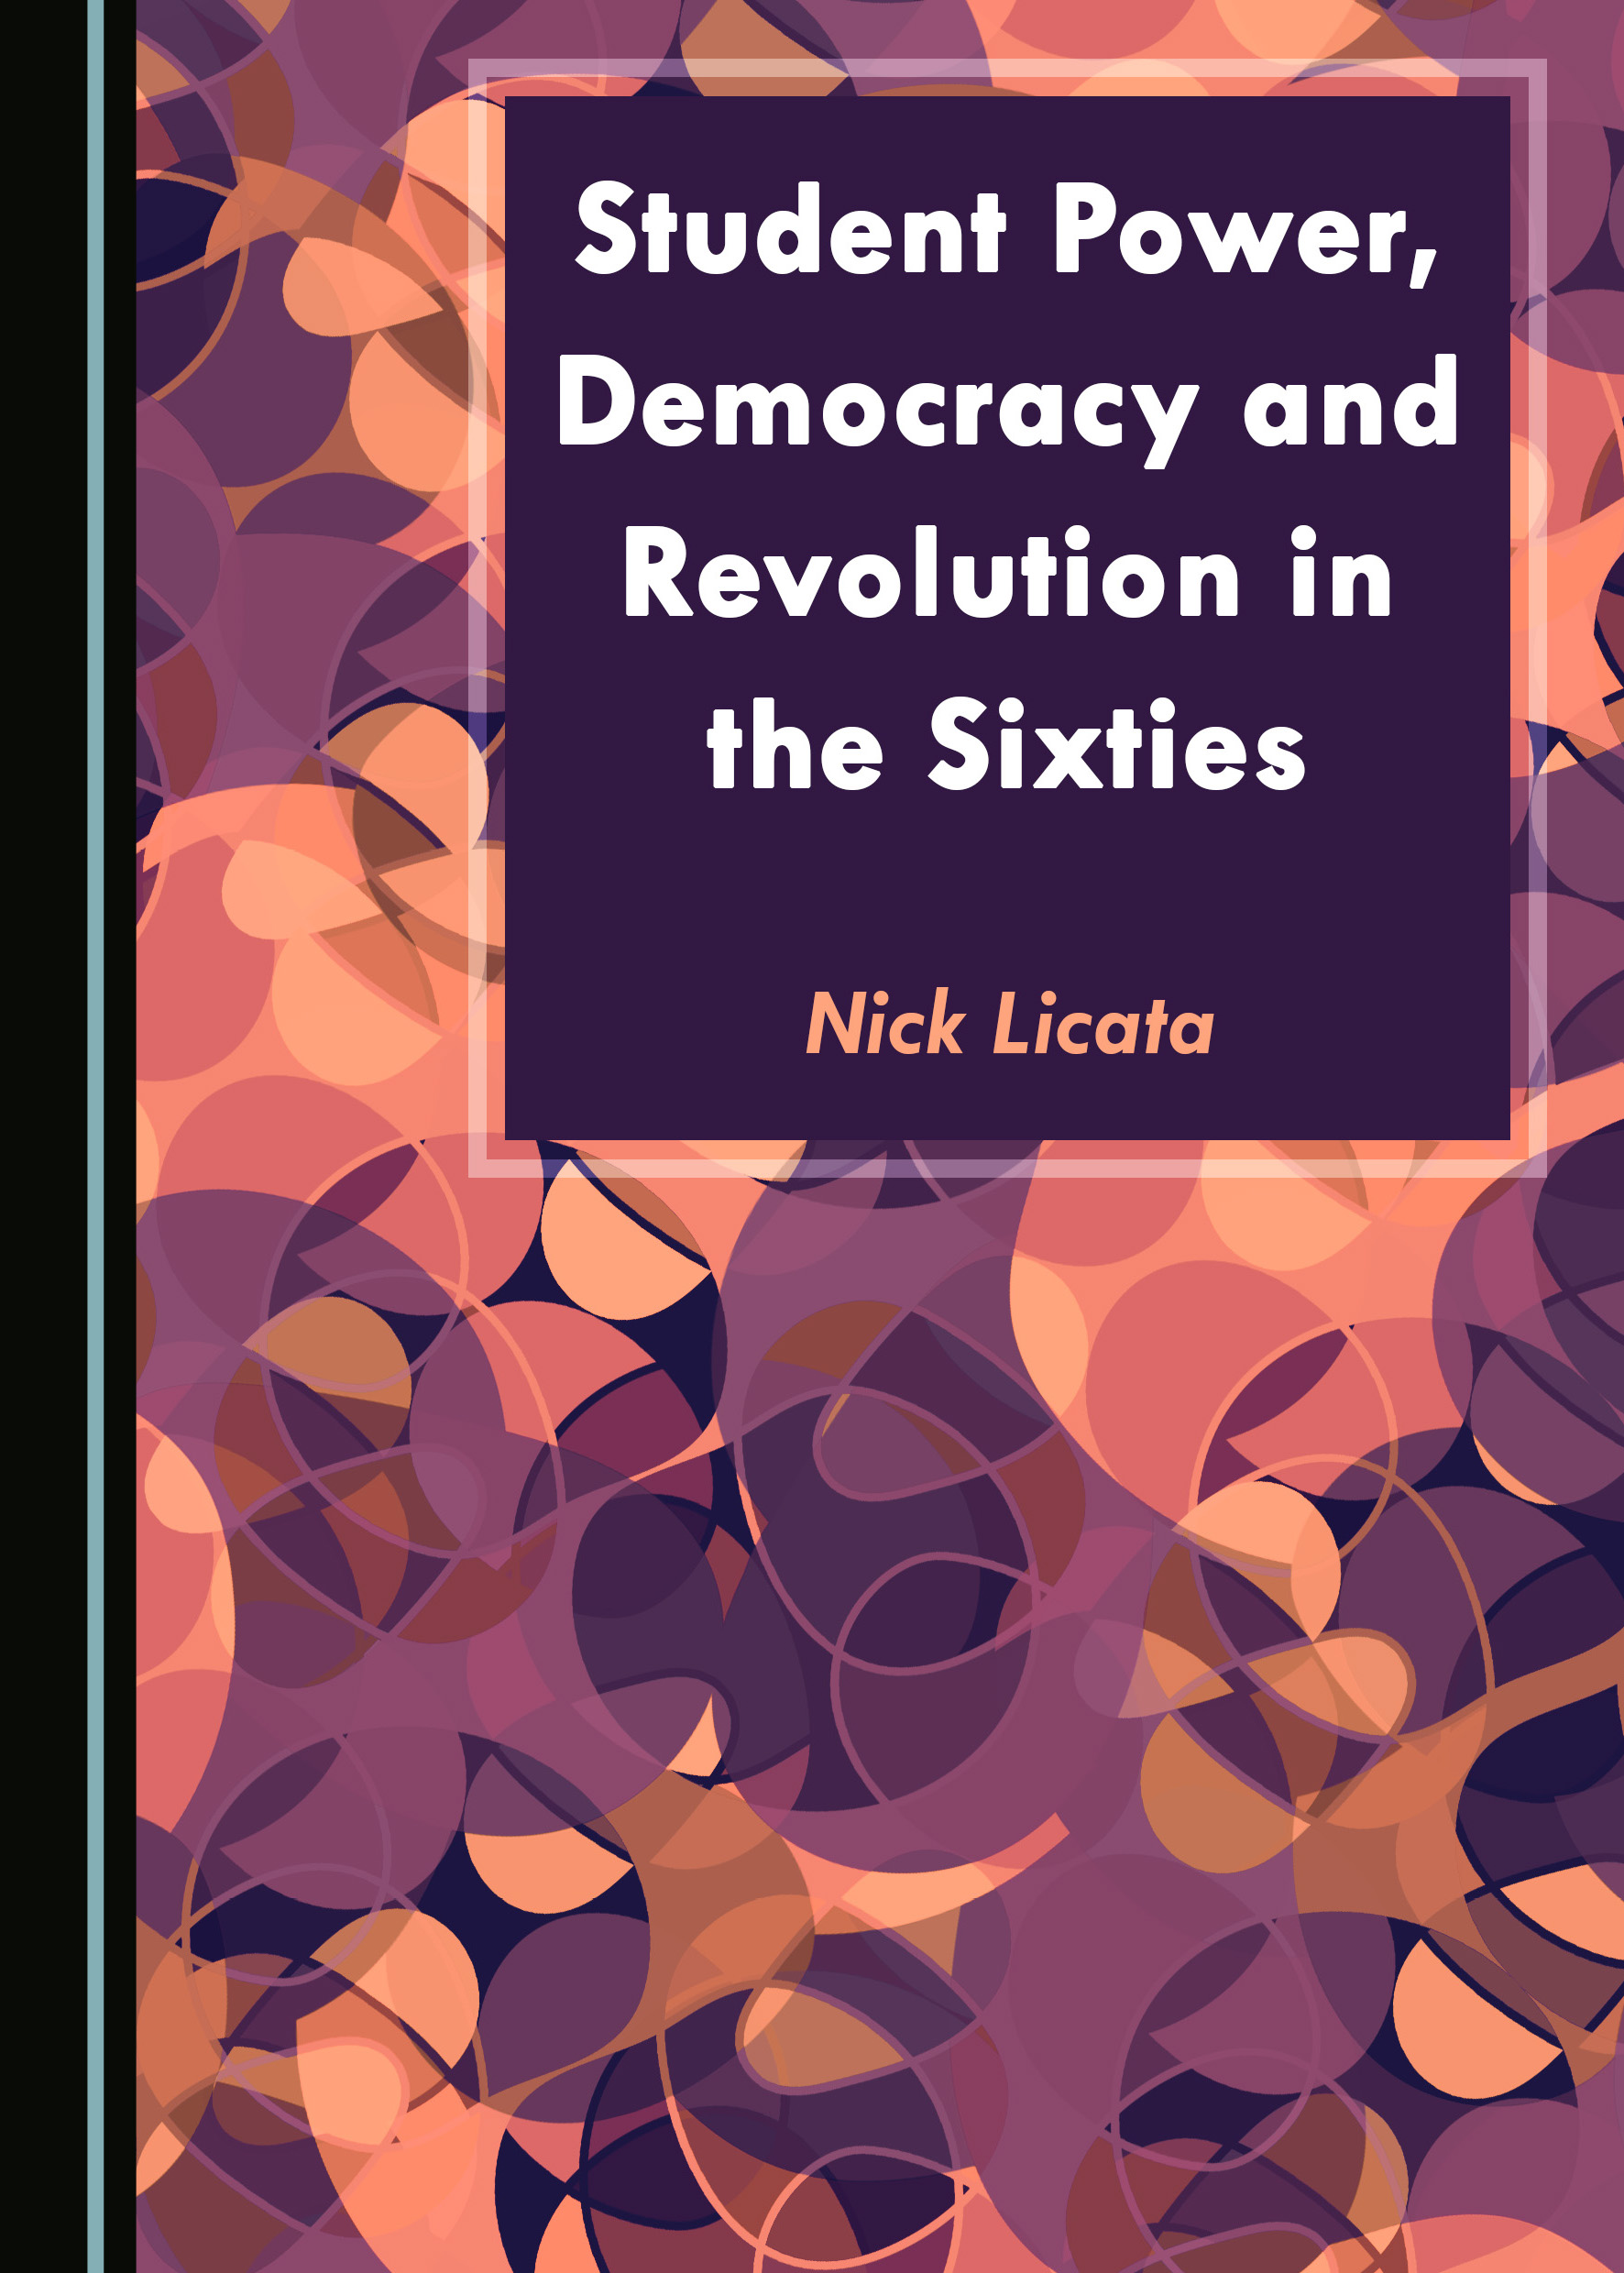 Student Power, Democracy and Revolution in the Sixties